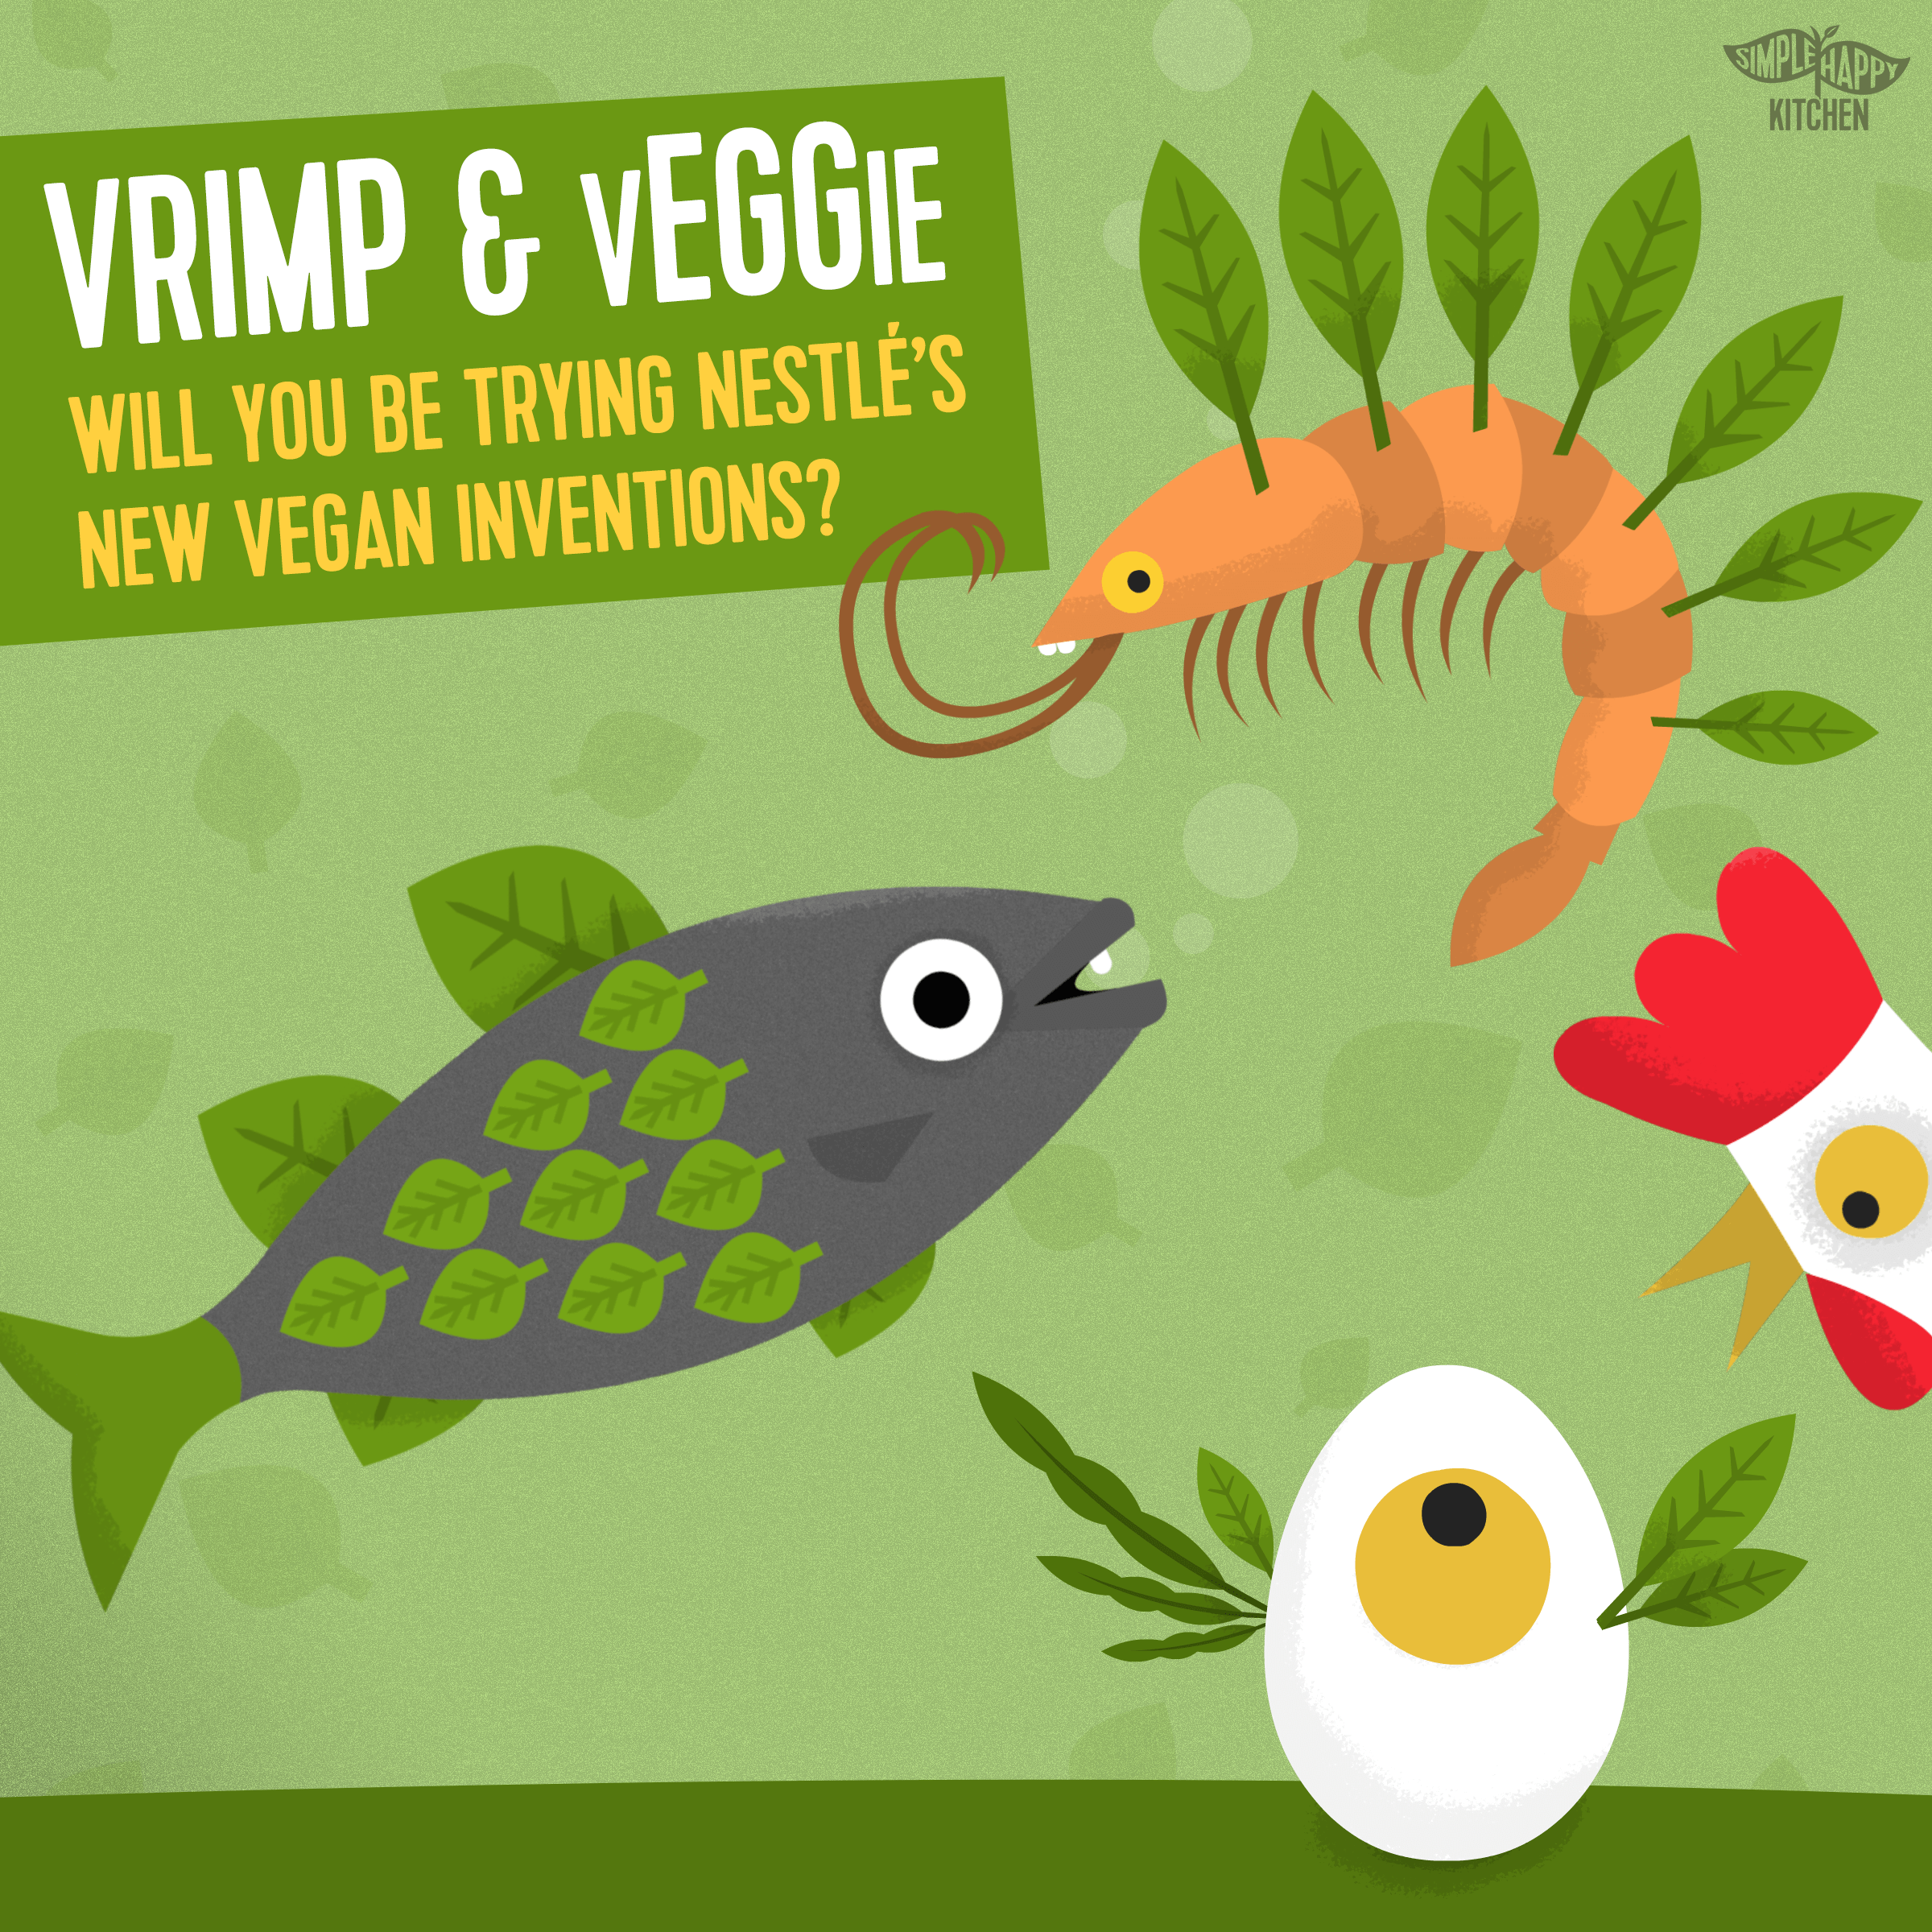 Vrimp and vEGGie: will you be trying Nestlé's new vegan inventions?